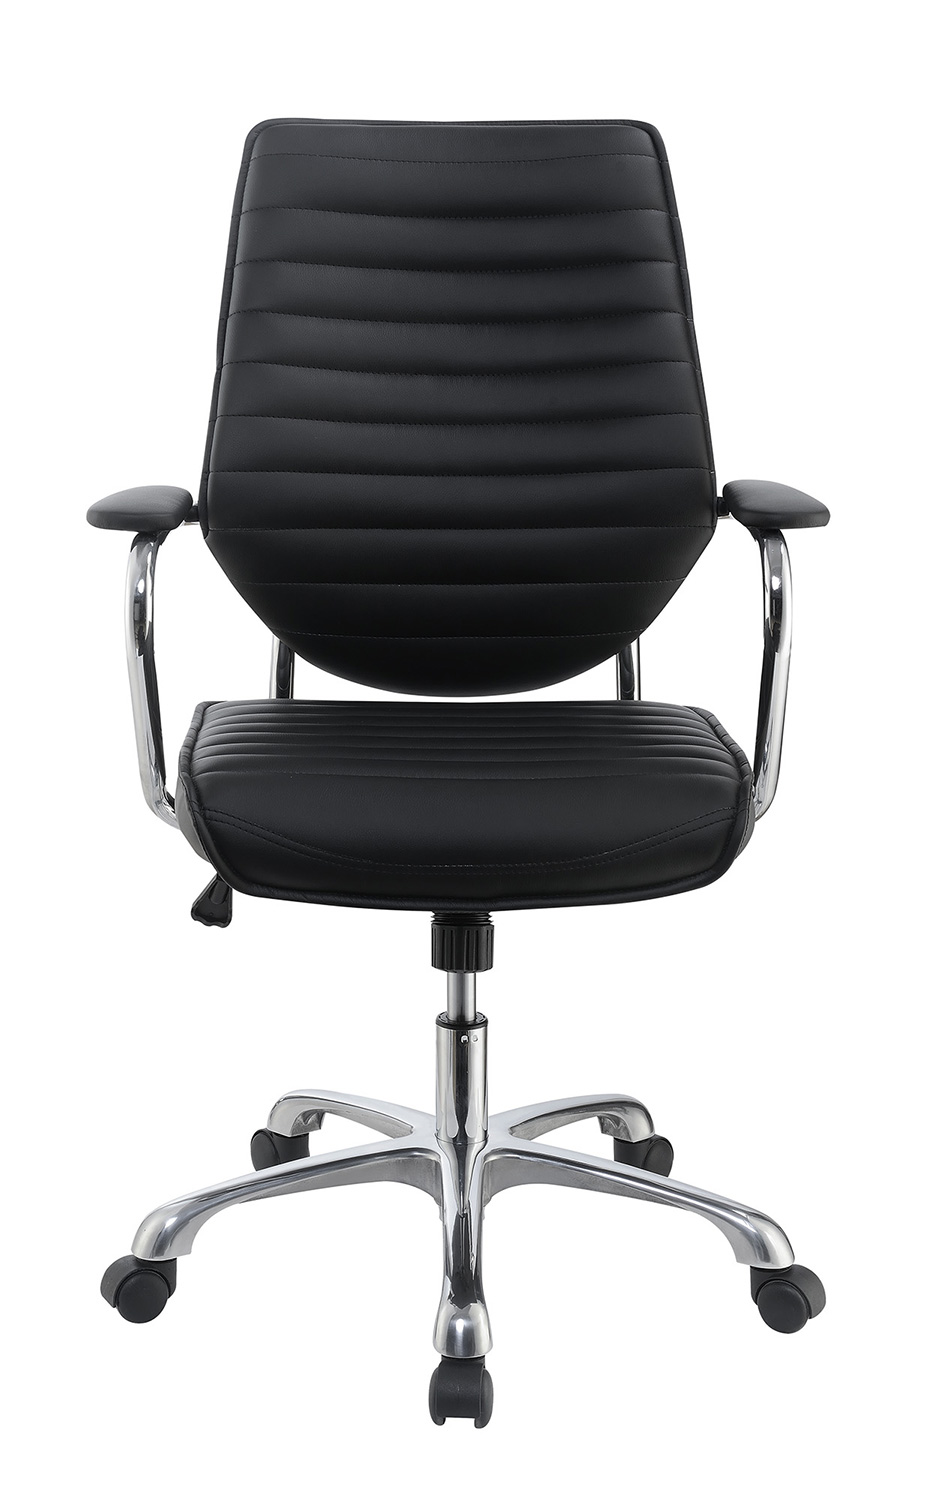 Coaster 801327 Office Chair - Black/Aluminum